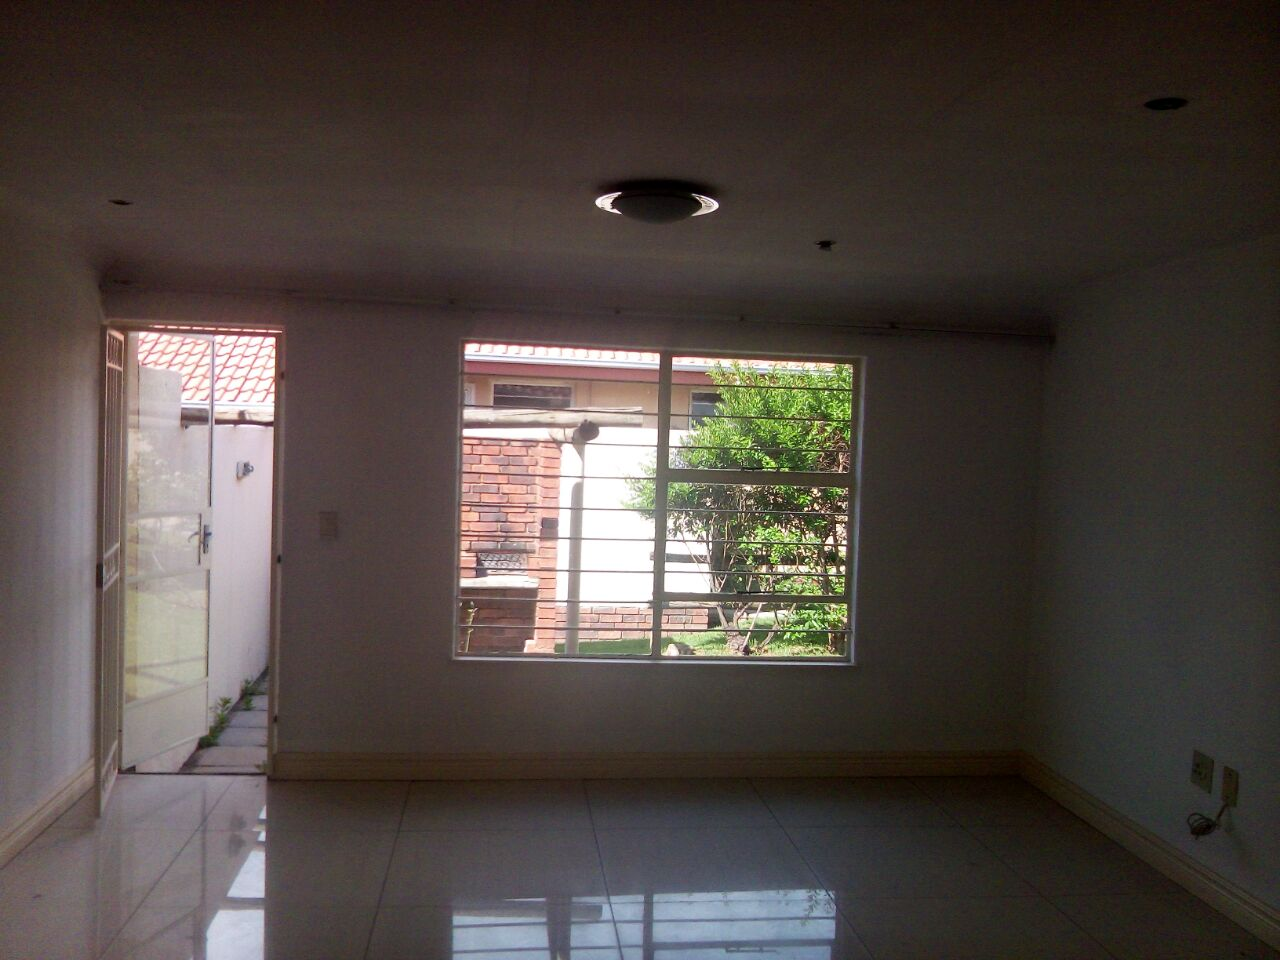 2 Bedroom Townhouse for sale in Sunninghill ENT0074719 : photo#3